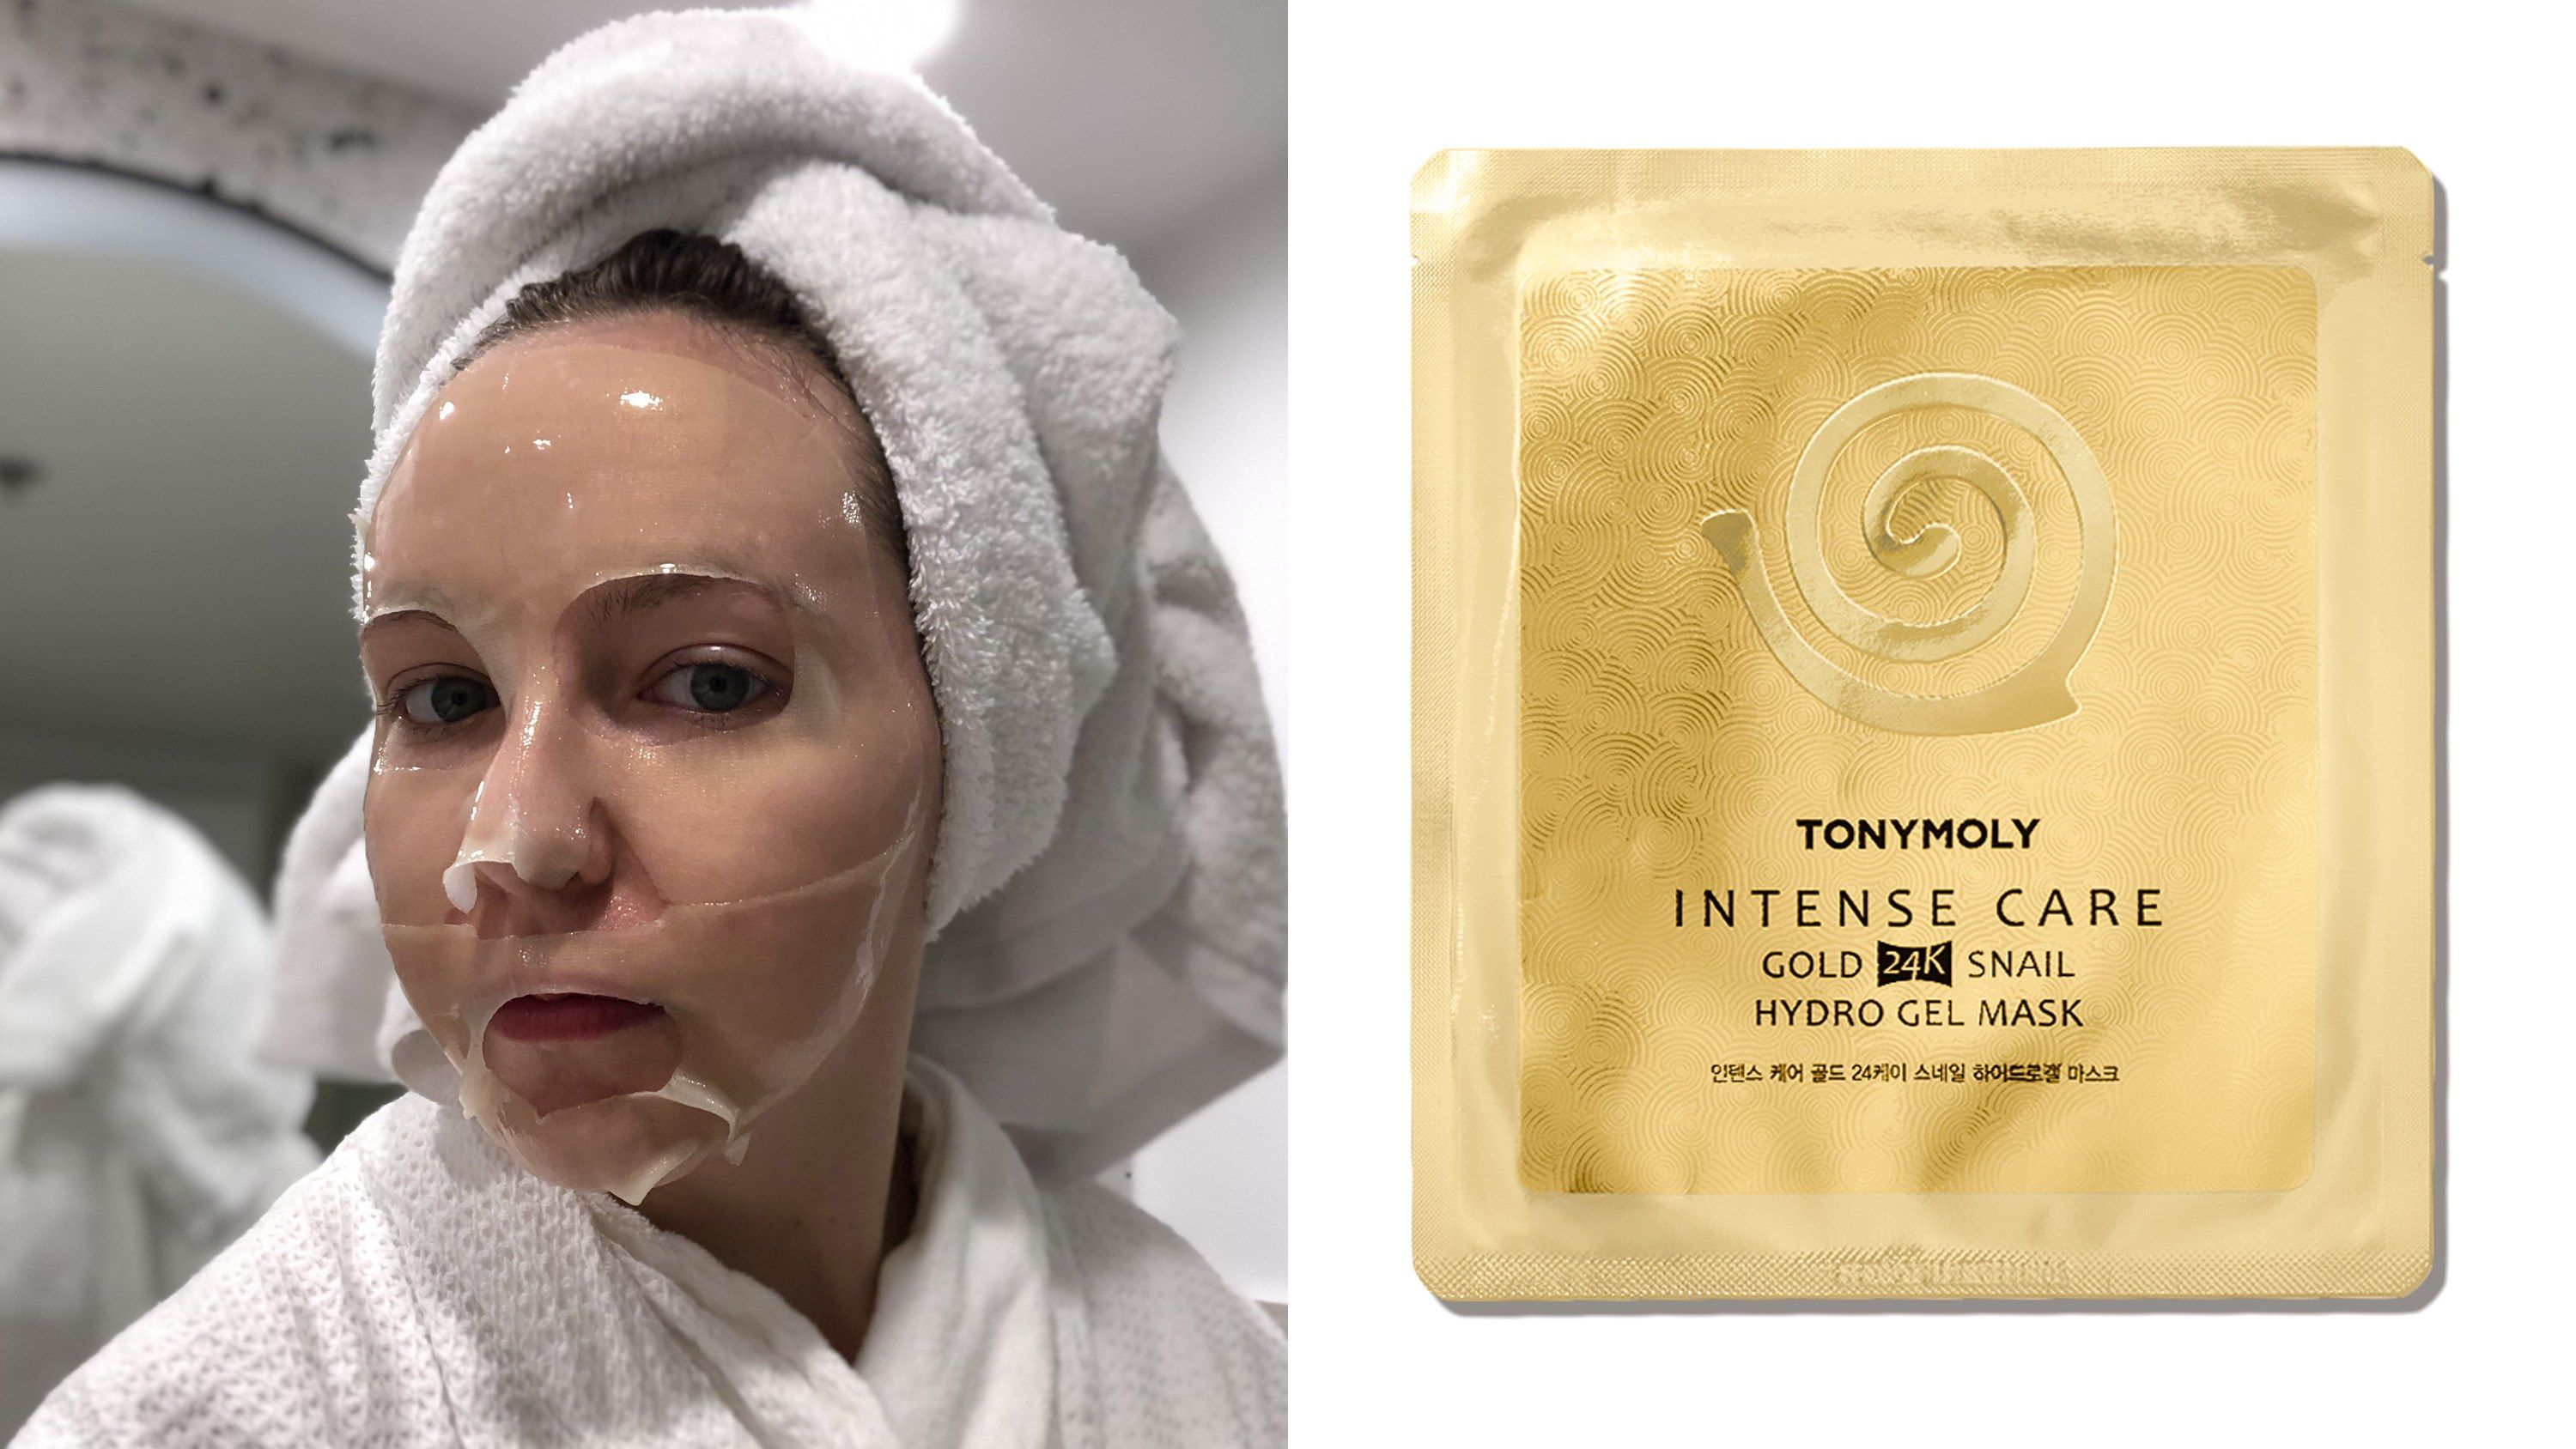 This 10 Sheet Mask Is Made With Snail Mucus Gel Mask Skin Calming Skincare Ingredients